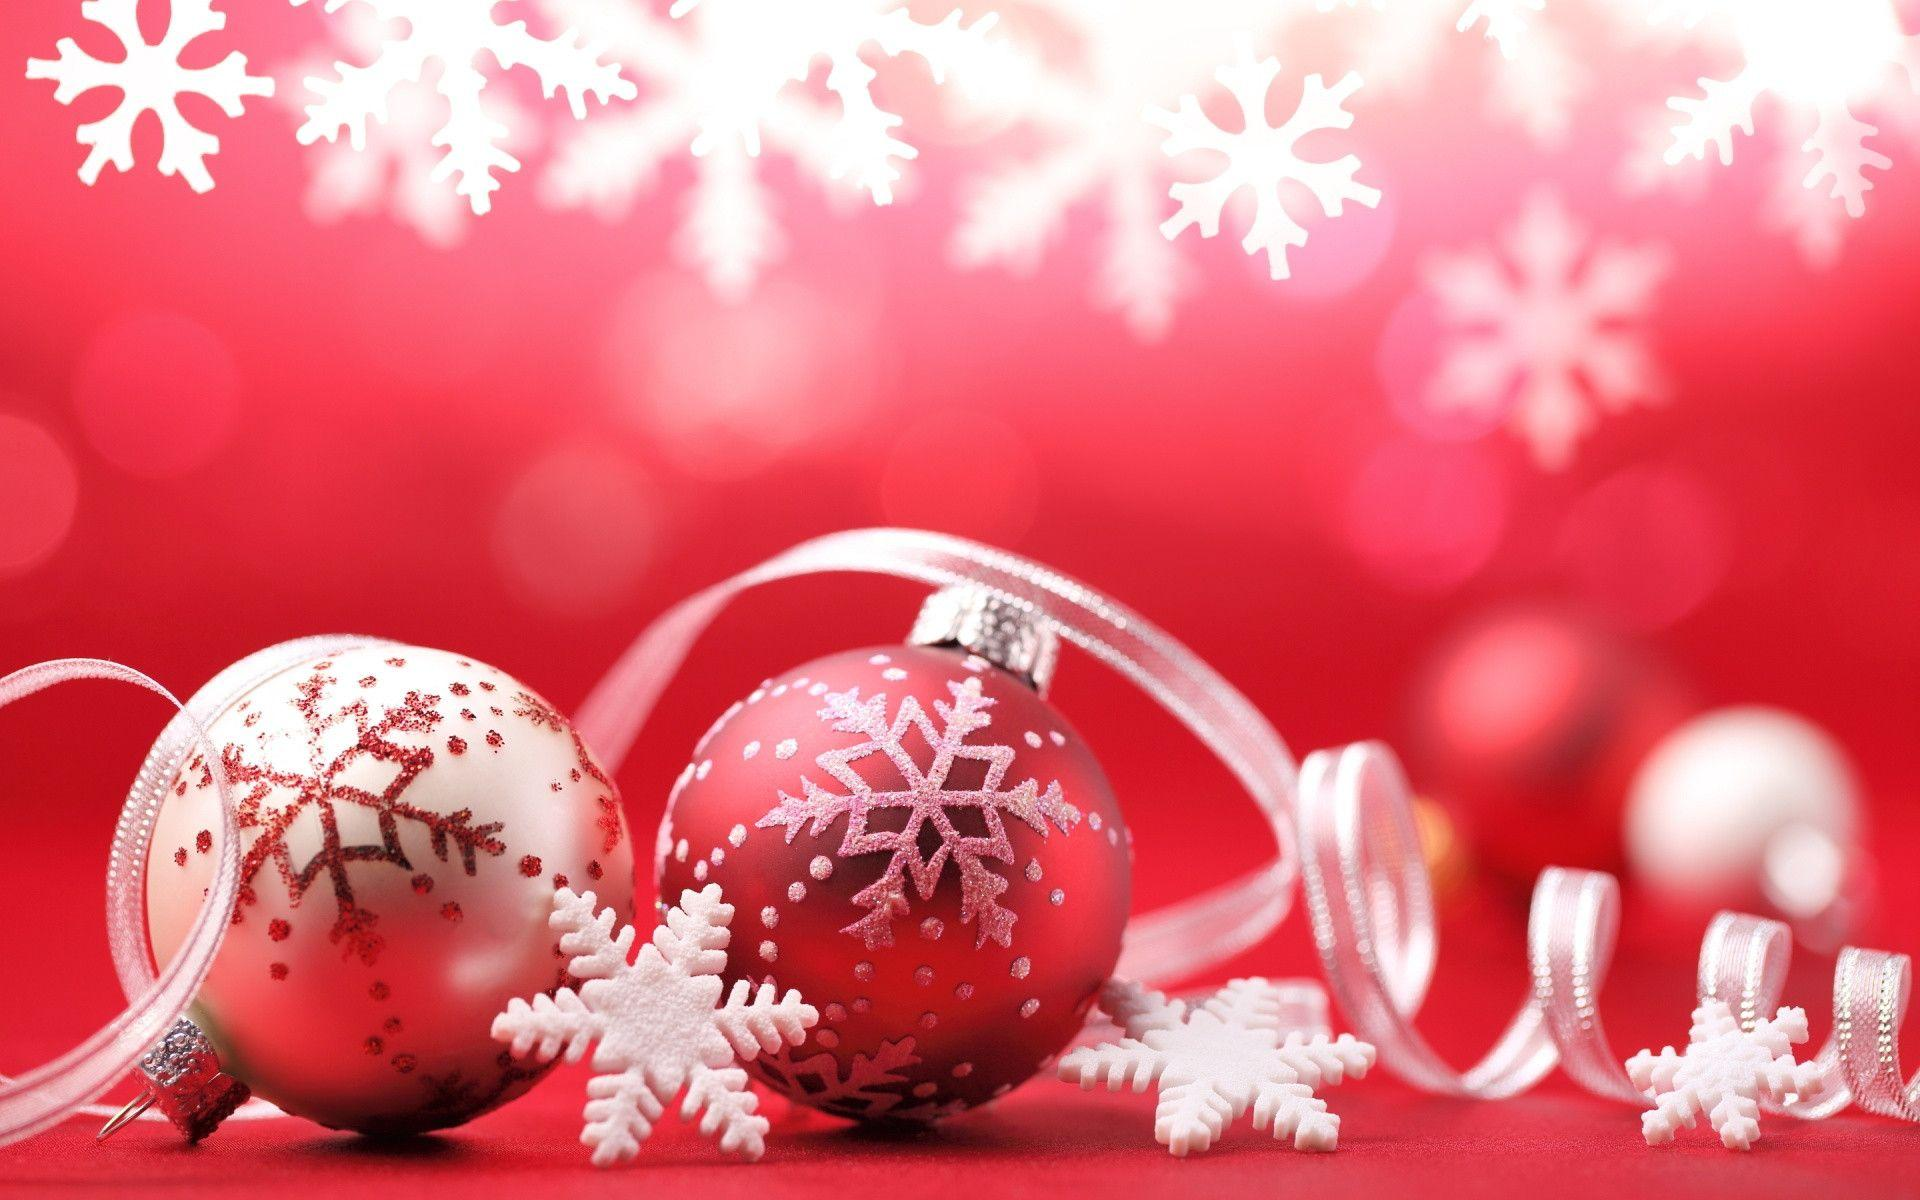 Christmas Ornaments Wallpapers Wallpaper Cave HD Wallpapers Download Free Images Wallpaper [1000image.com]